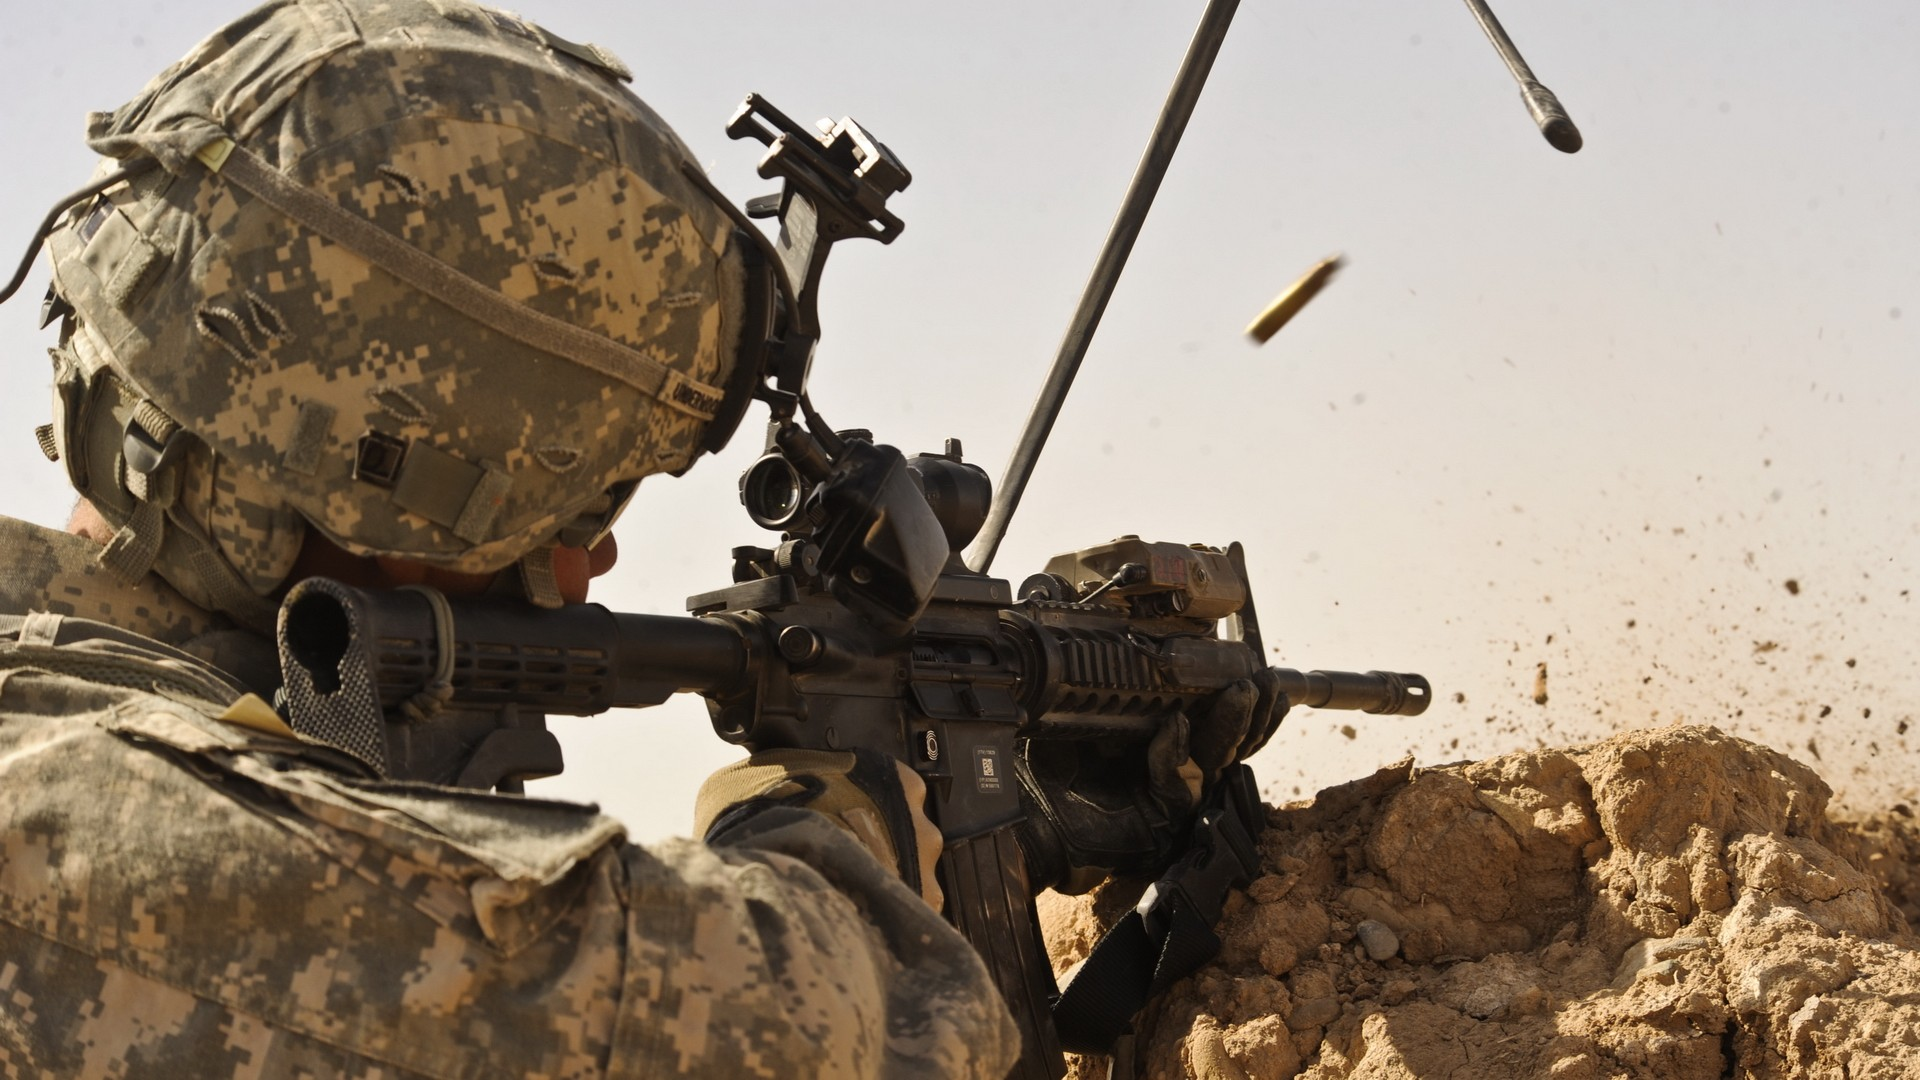 American army wallpapers high quality download free - Military wallpaper army ...